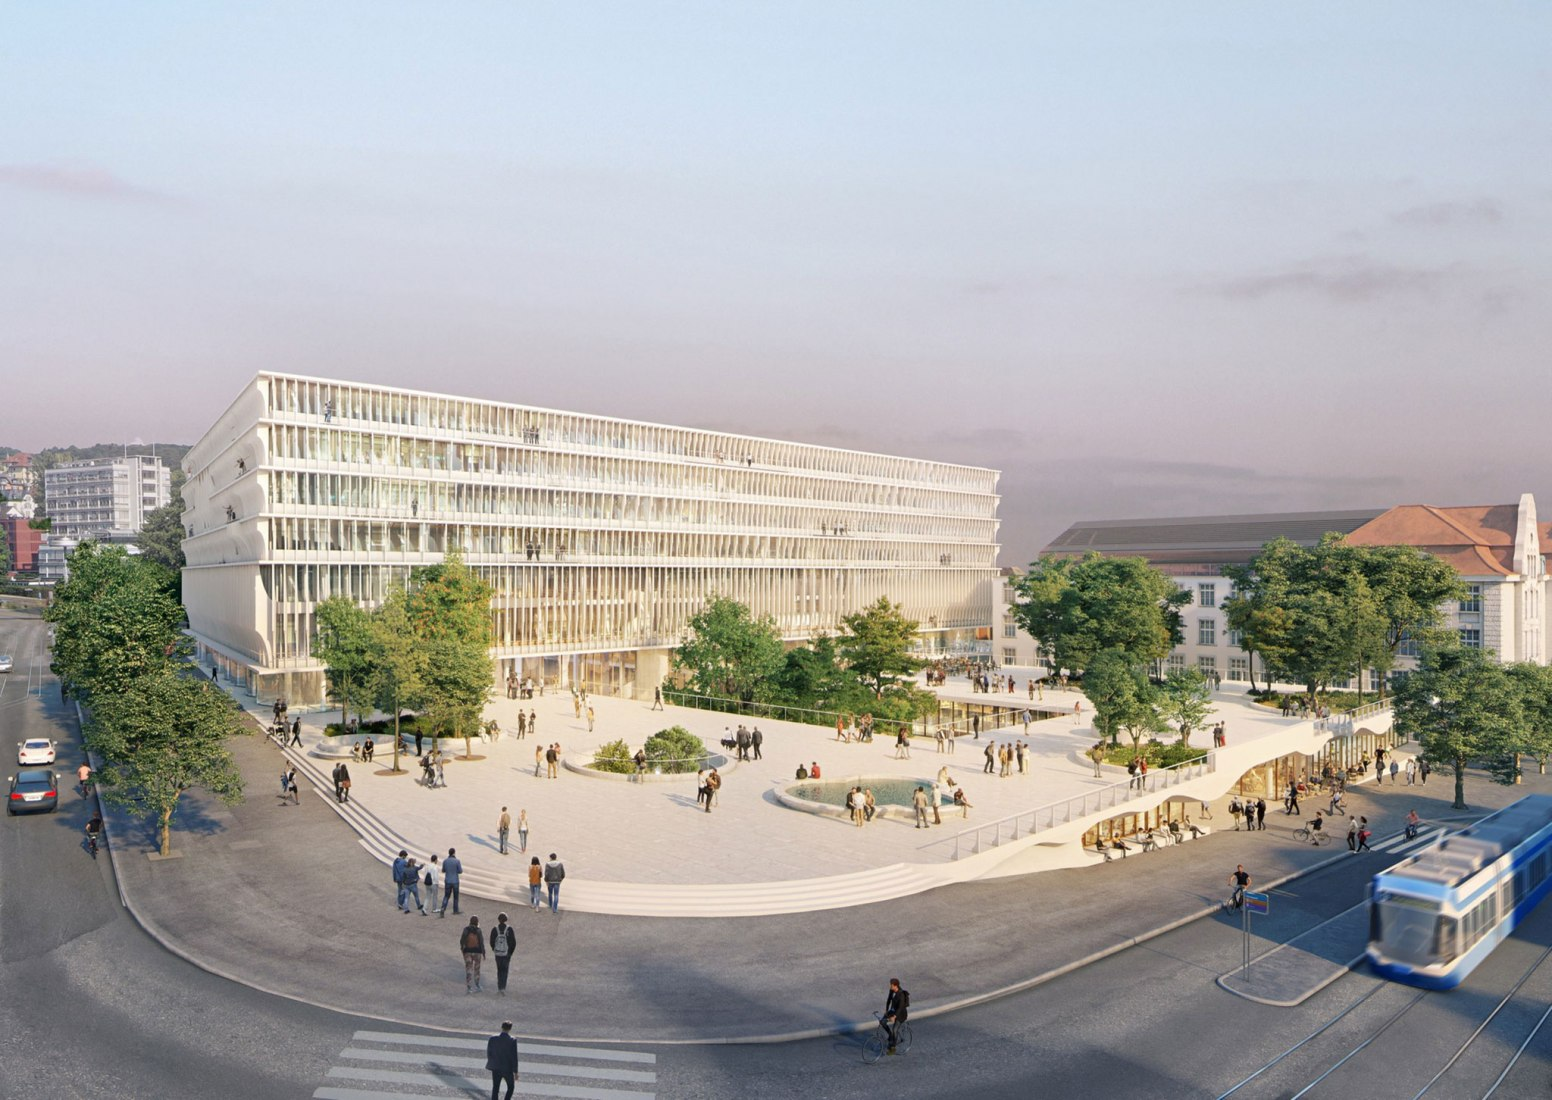 FORUM UZH by Herzog & de Meuron. Image courtesy of Herzog & de Meuron